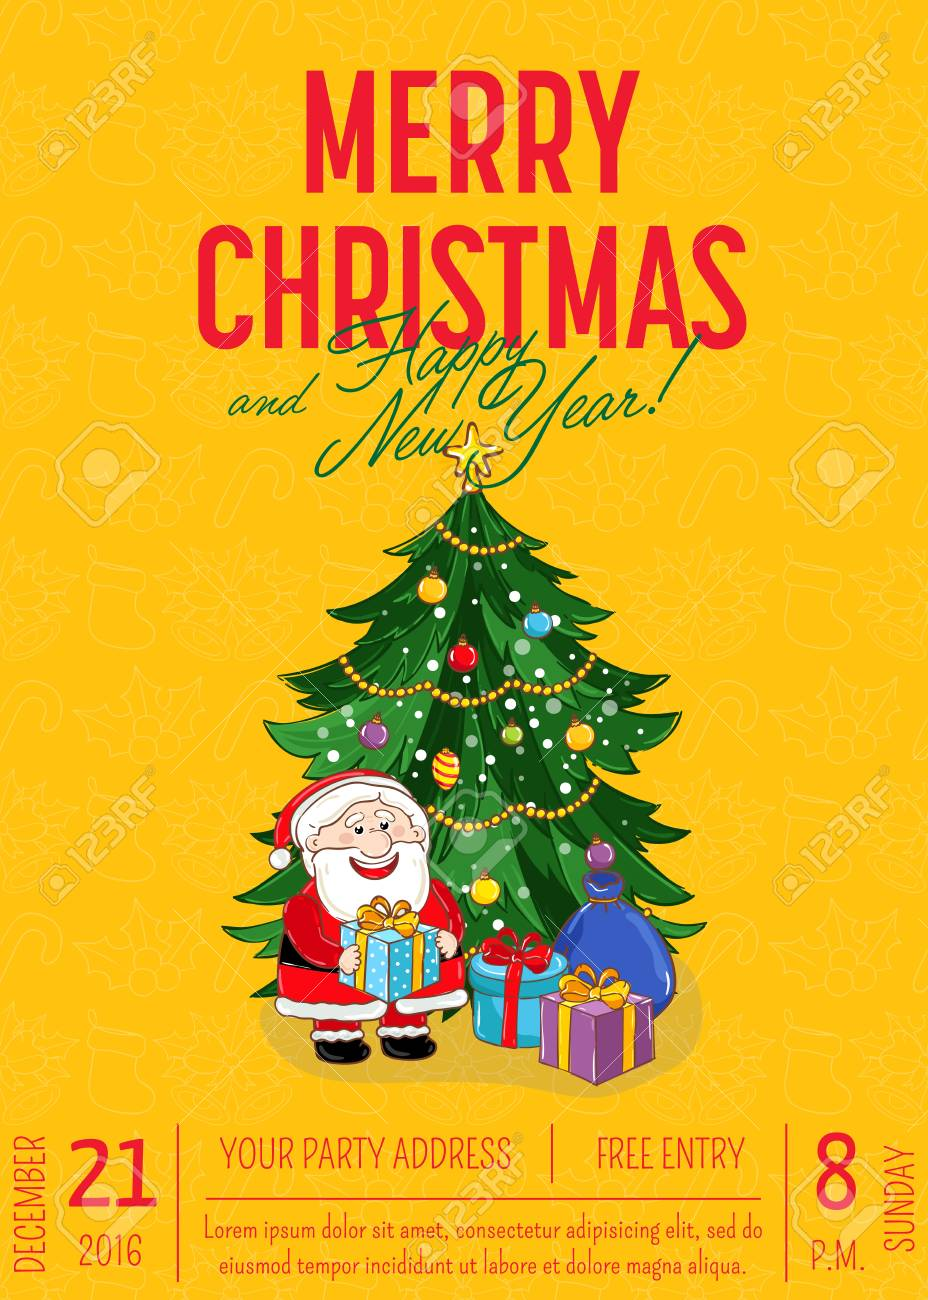 Christmas Date.Christmas Party Promo Poster With Date And Time Santa Gifts